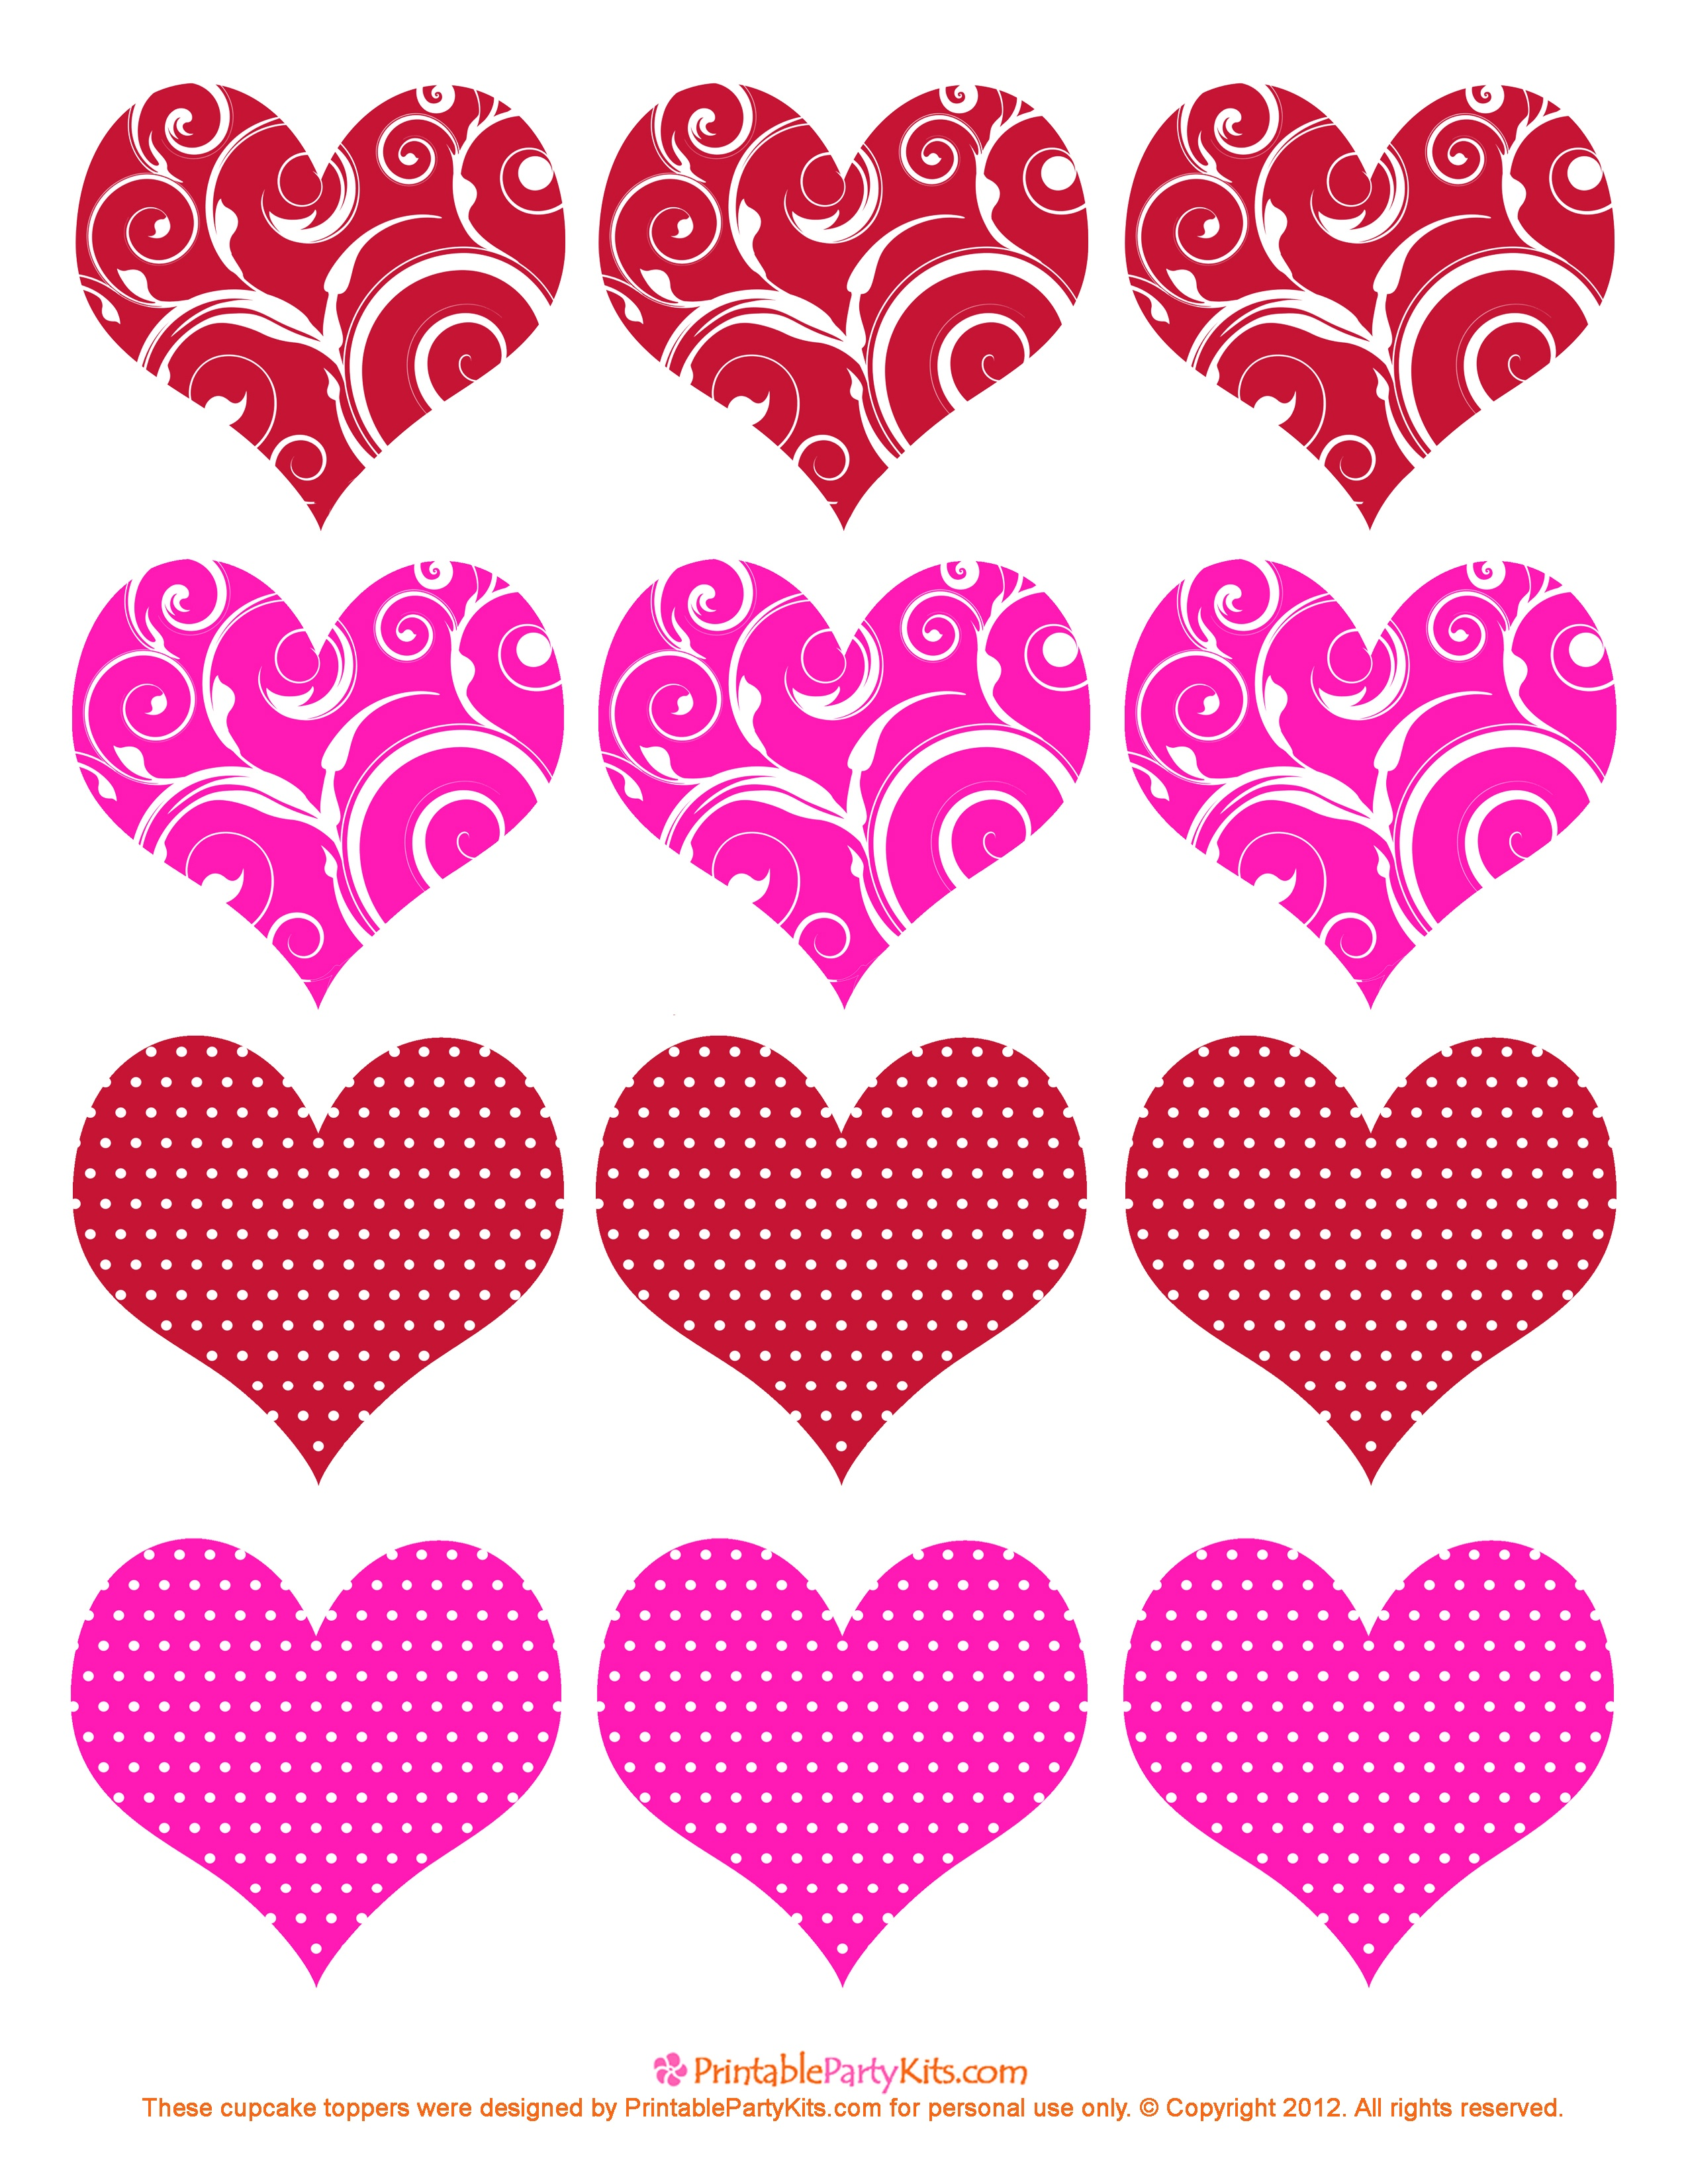 11 Valentine Heart Template Images - Free Printable Valentine Hearts - Free Printable Hearts